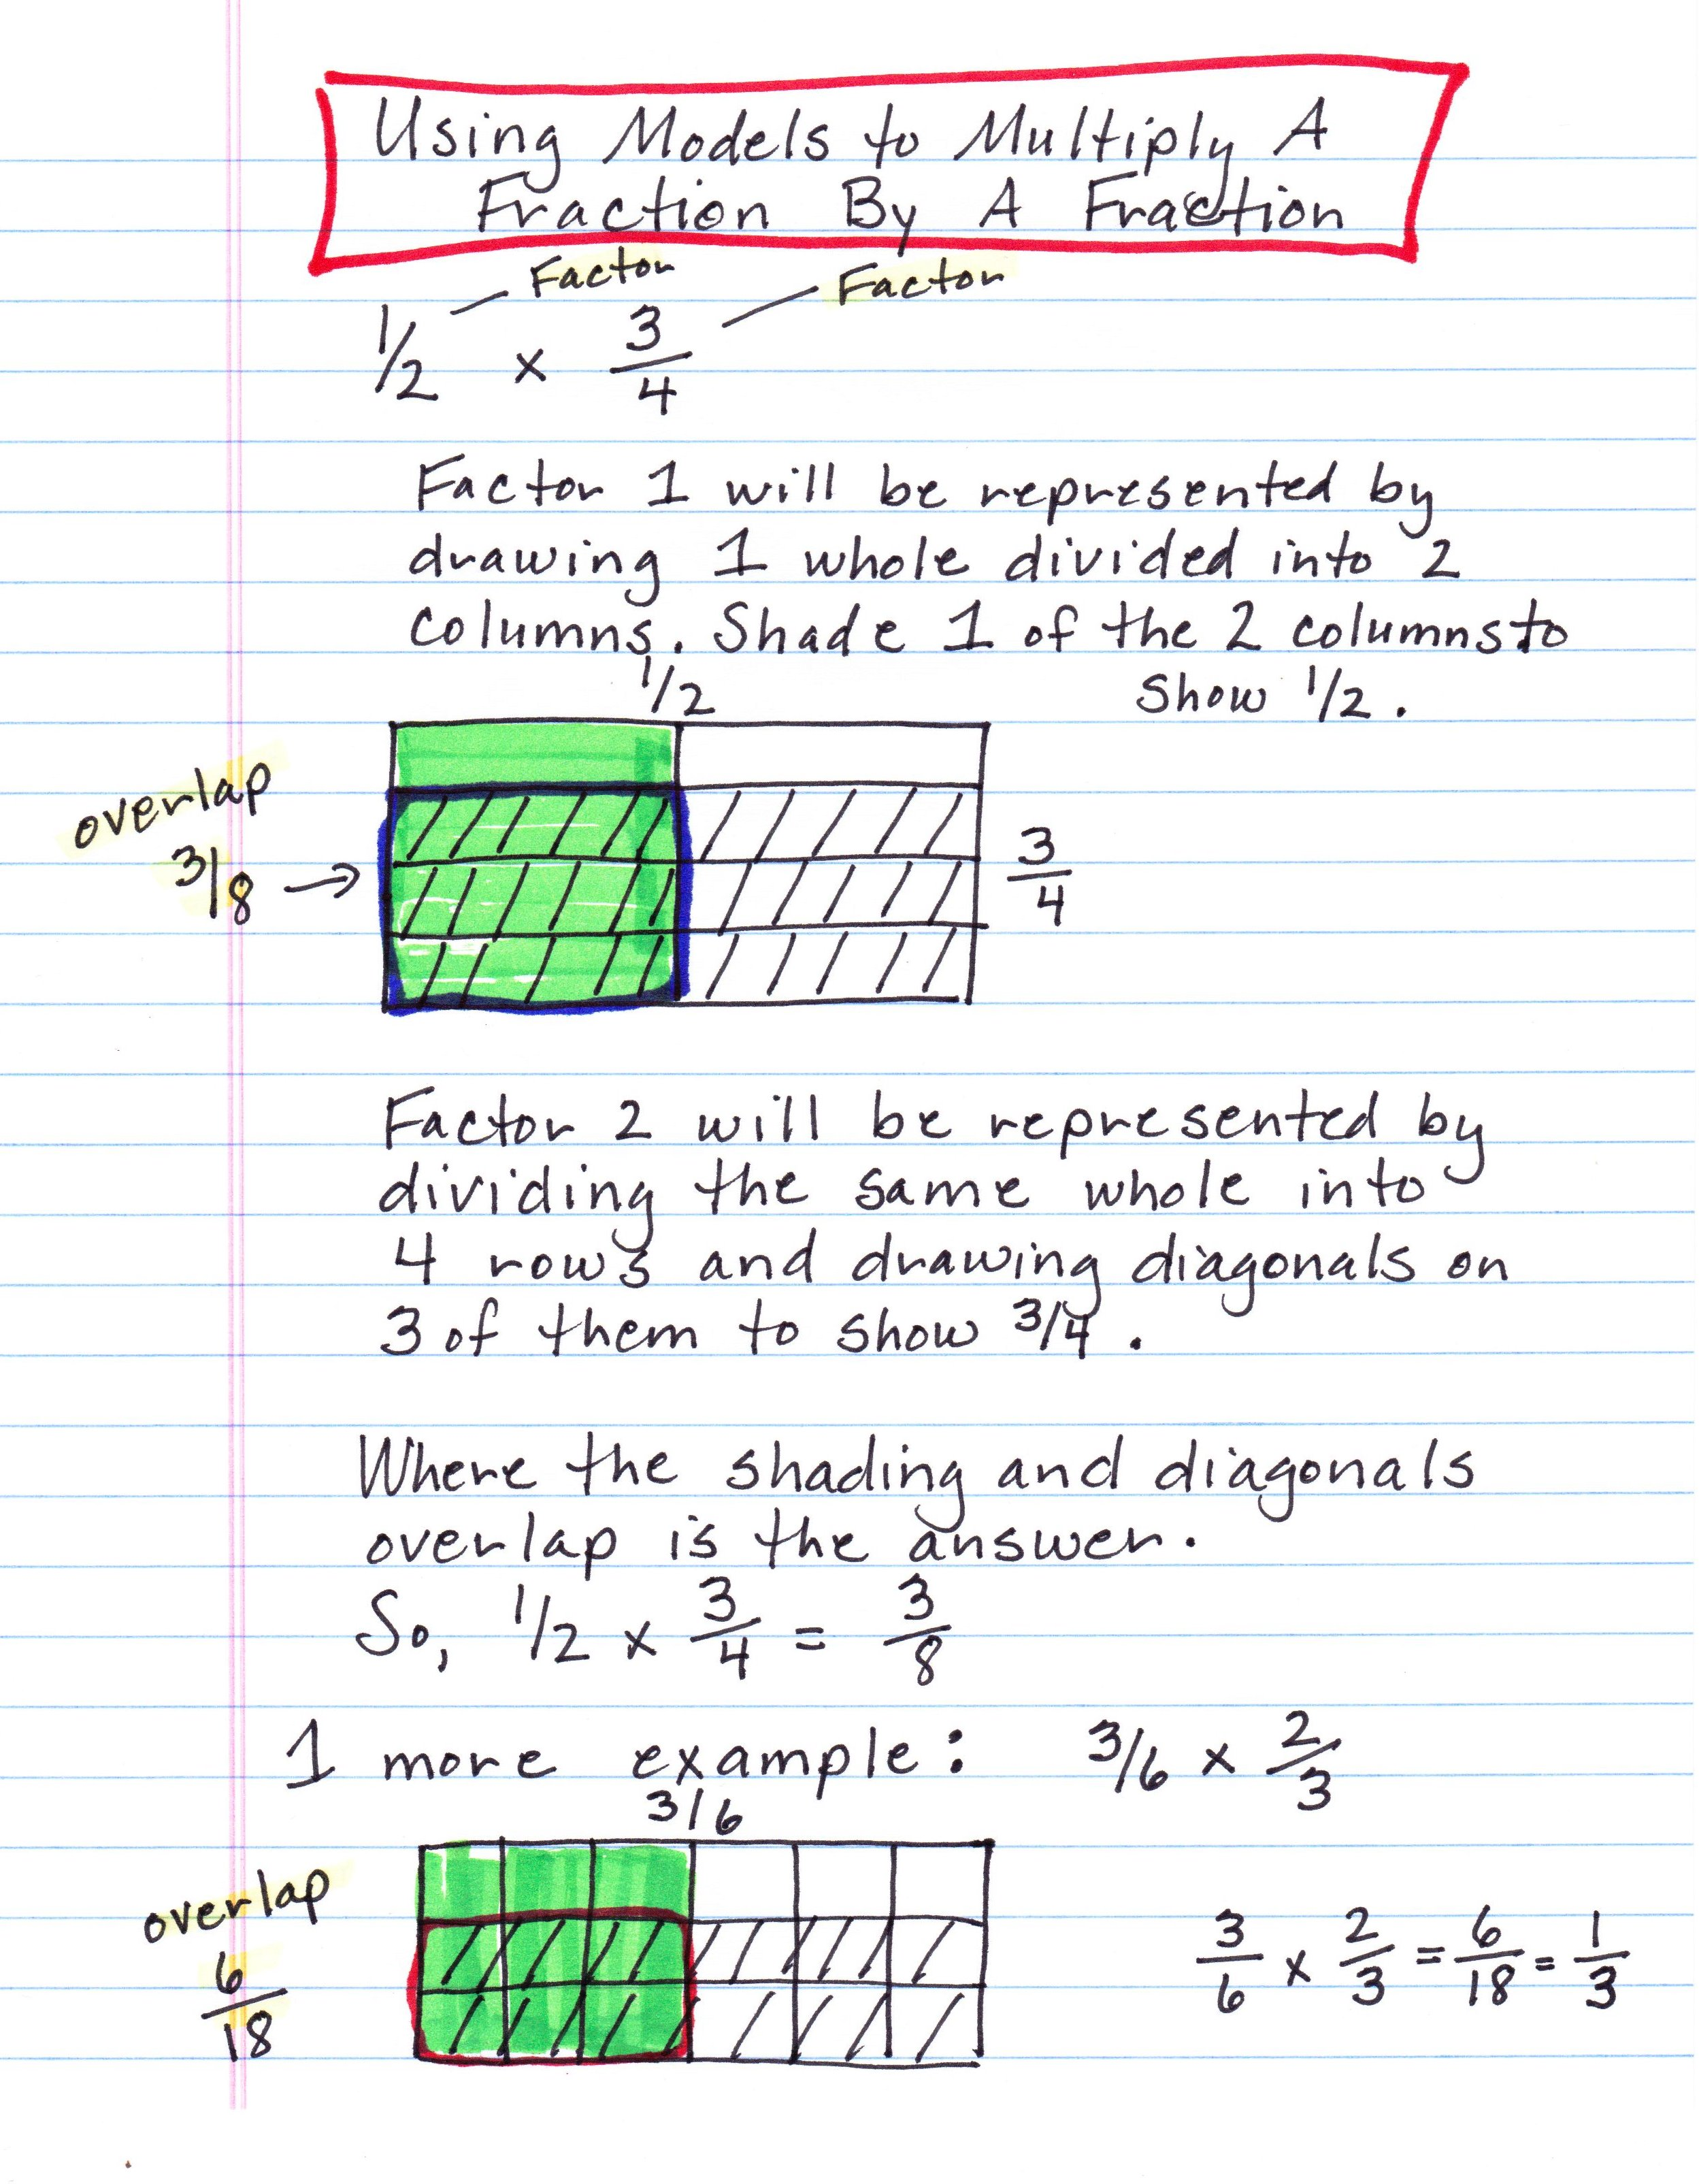 Using Models To Multiply A Fraction By A Fraction Class Math Notes Square Fractions  How To